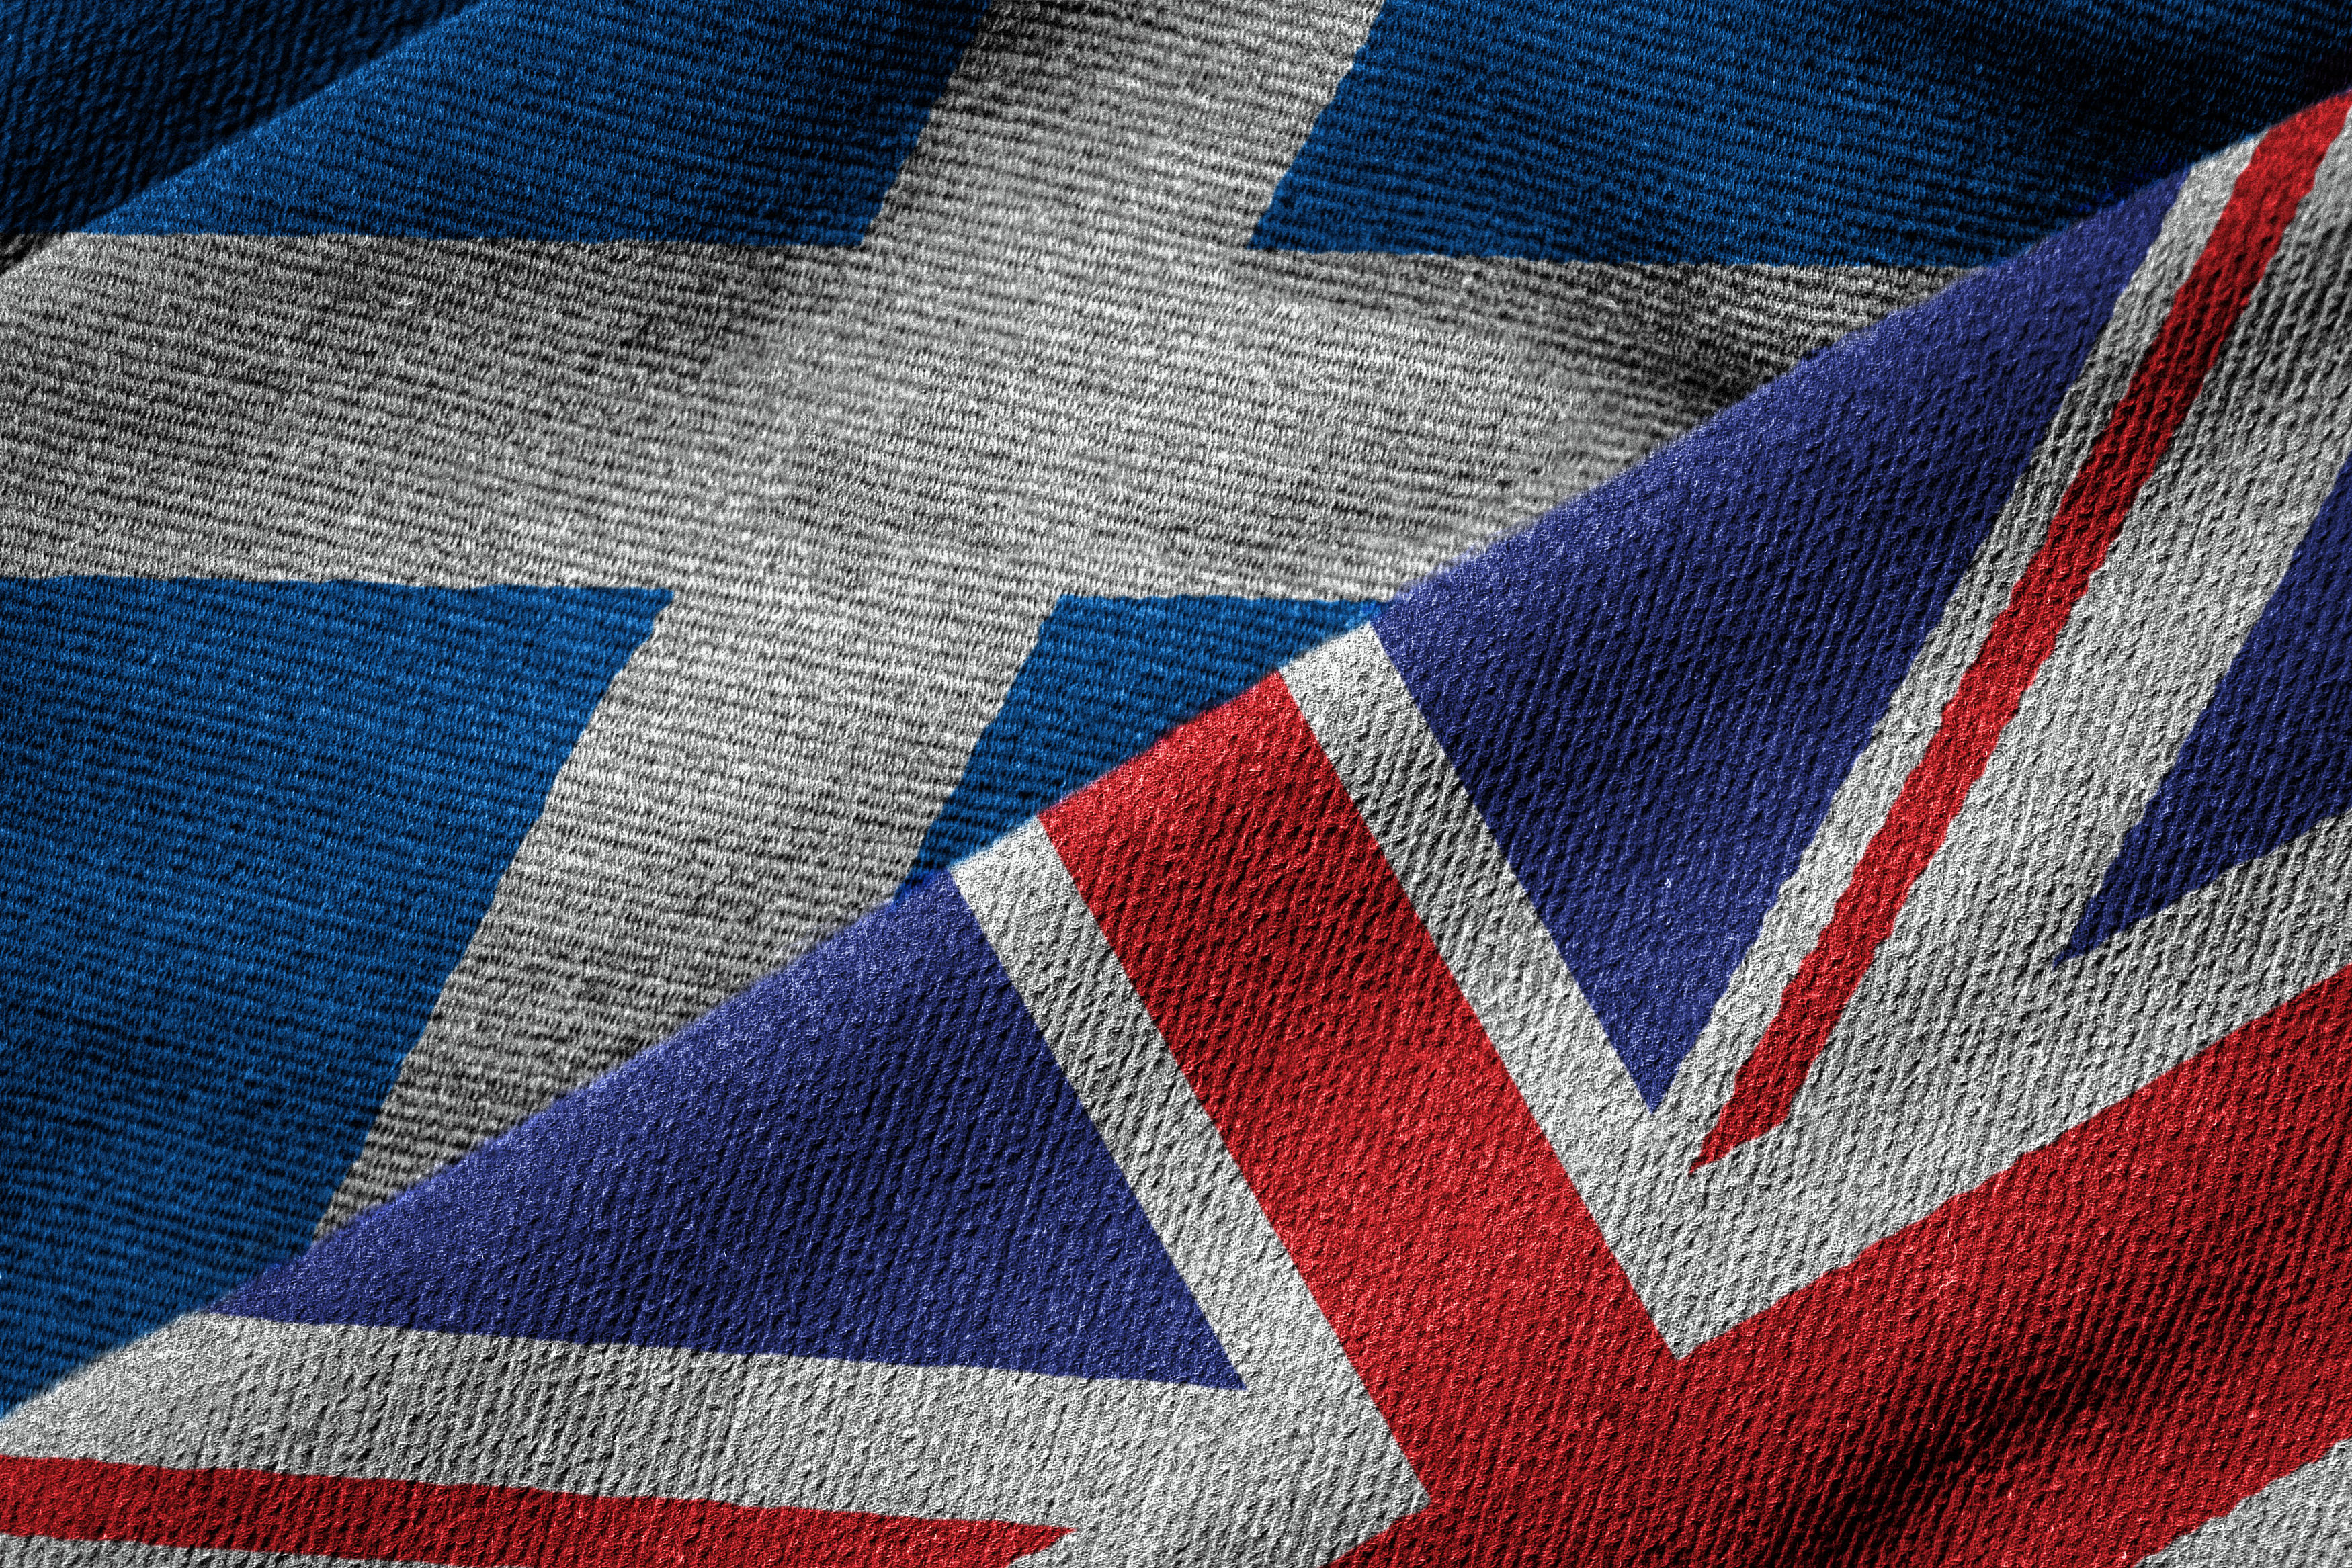 The impact of Brexit on Scotland's growth sectors | Scottish